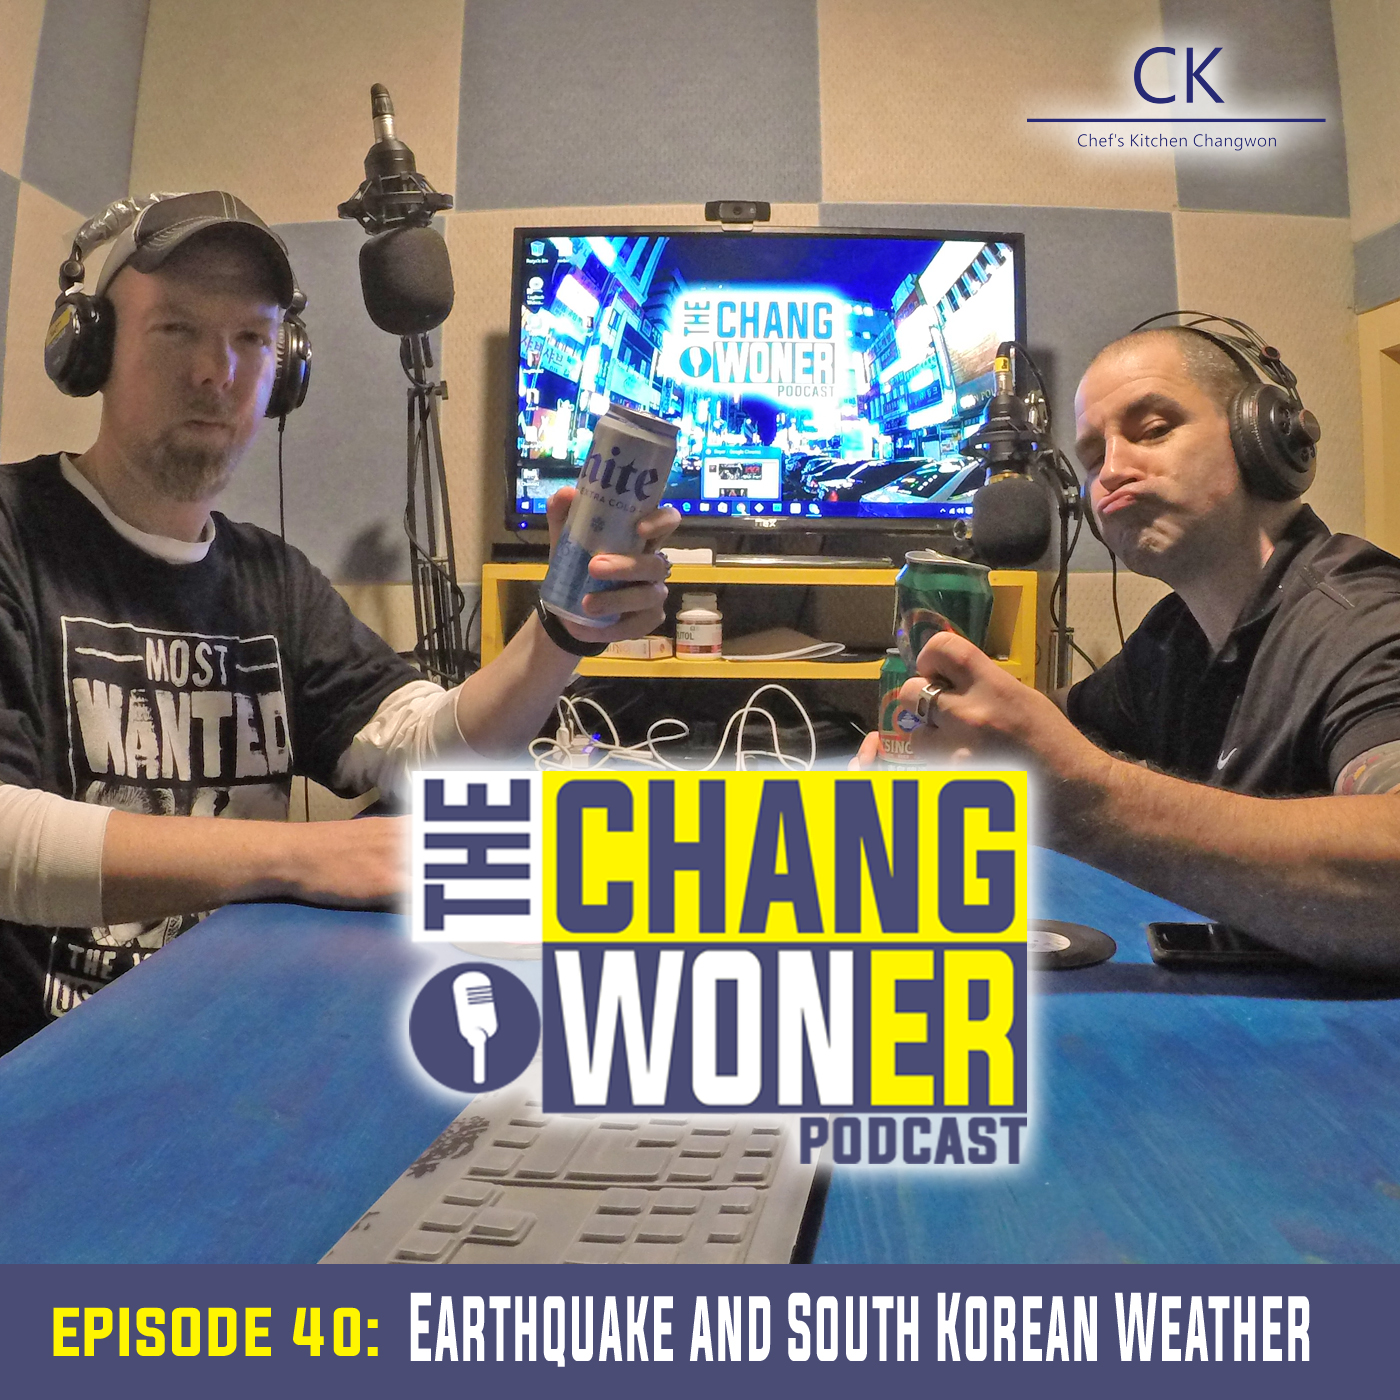 Artwork for EARTHQUAKES in Korea and South Korean Weather. (Ep 40)